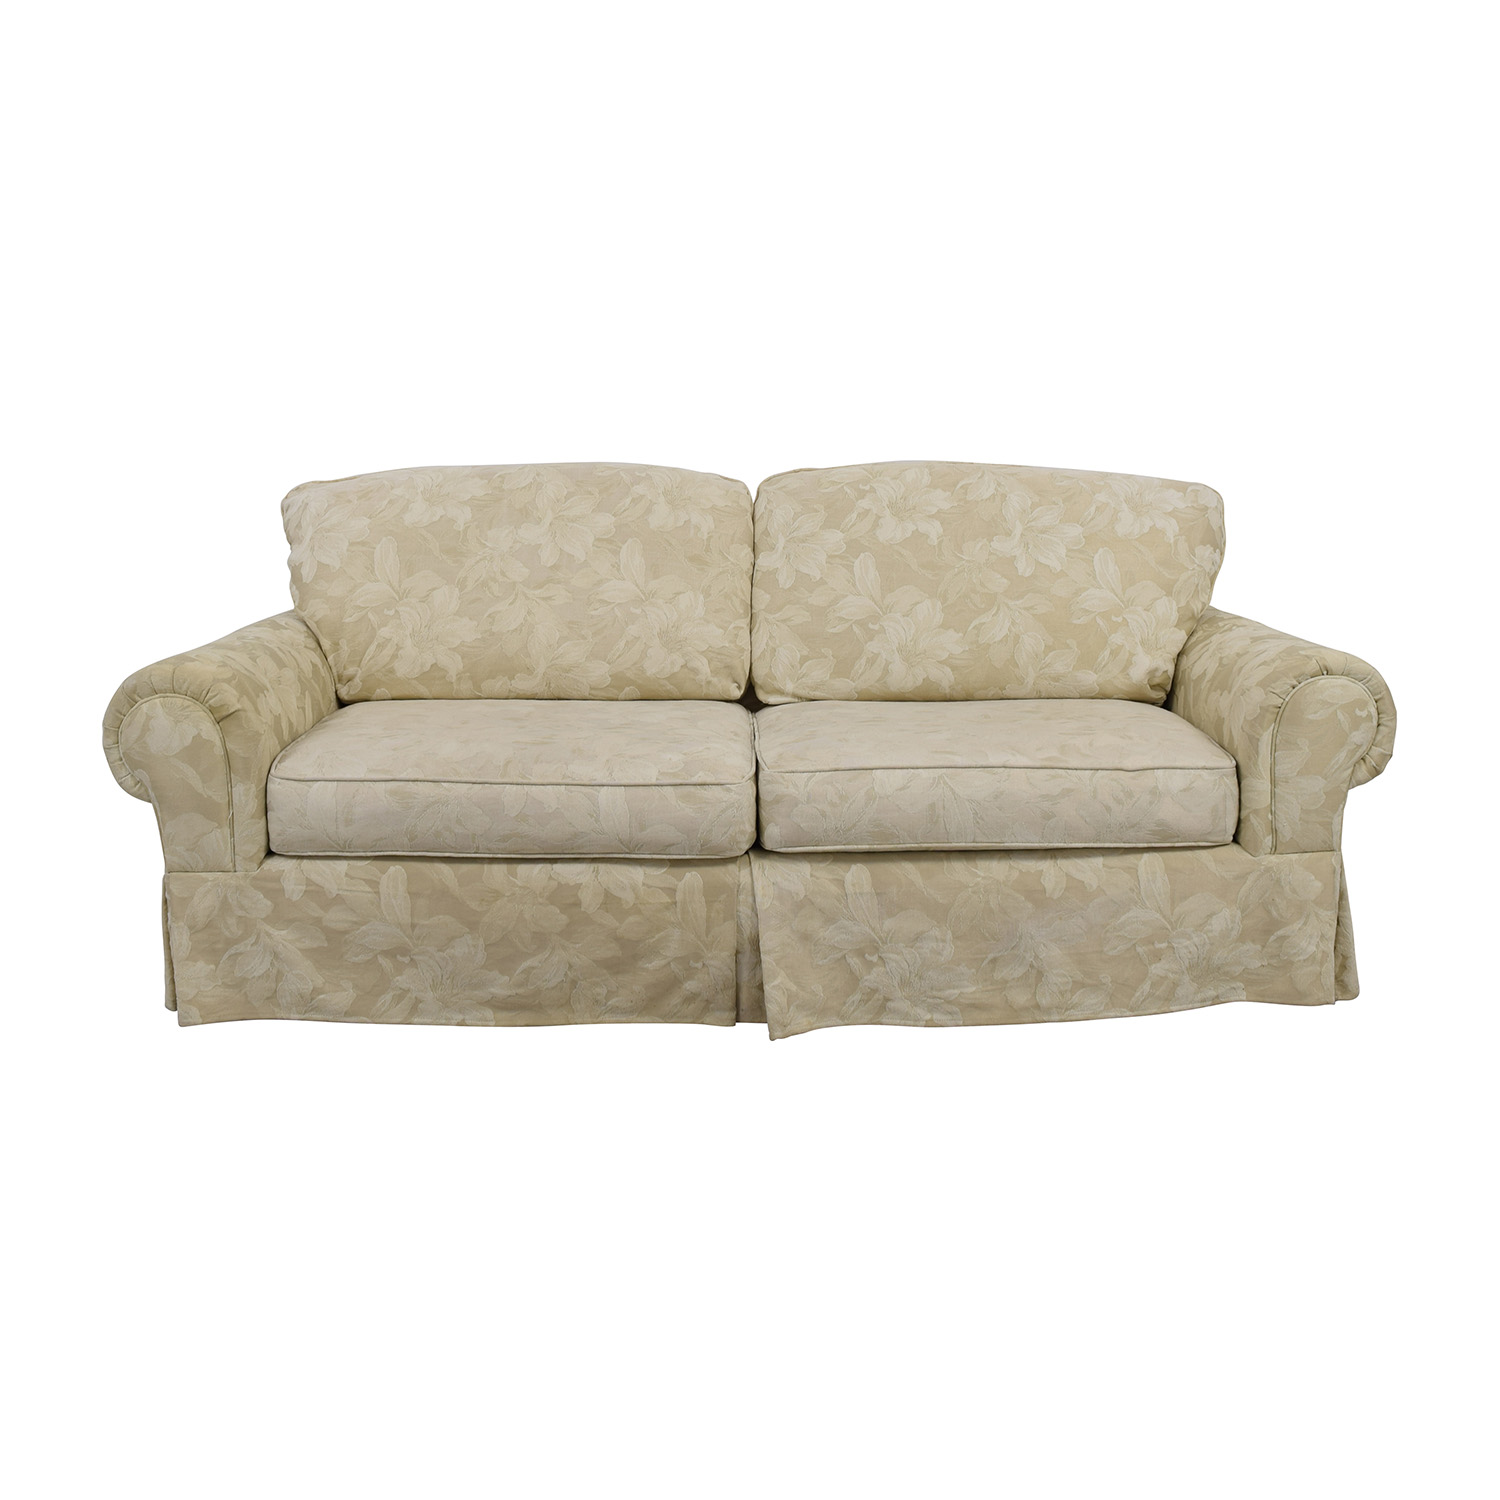 Merveilleux White Jacquard Lilly Upholstered Sofa For Sale ...